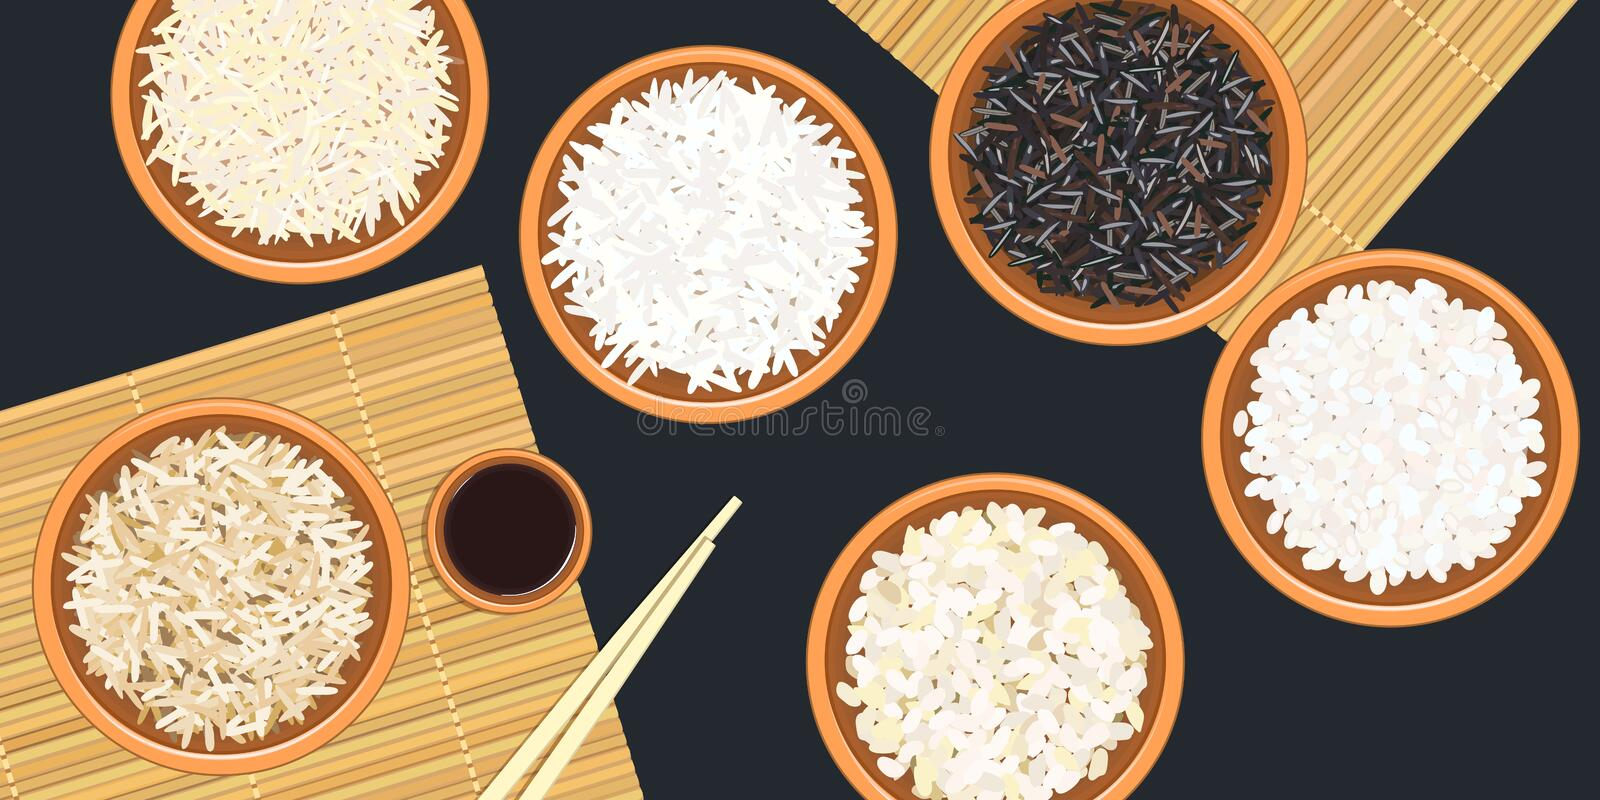 Different types of rice in ceramic bowls. Basmati, wild, jasmine, long brown, arborio, sushi. chopsticks. Kitchen bamboo mat vector illustration